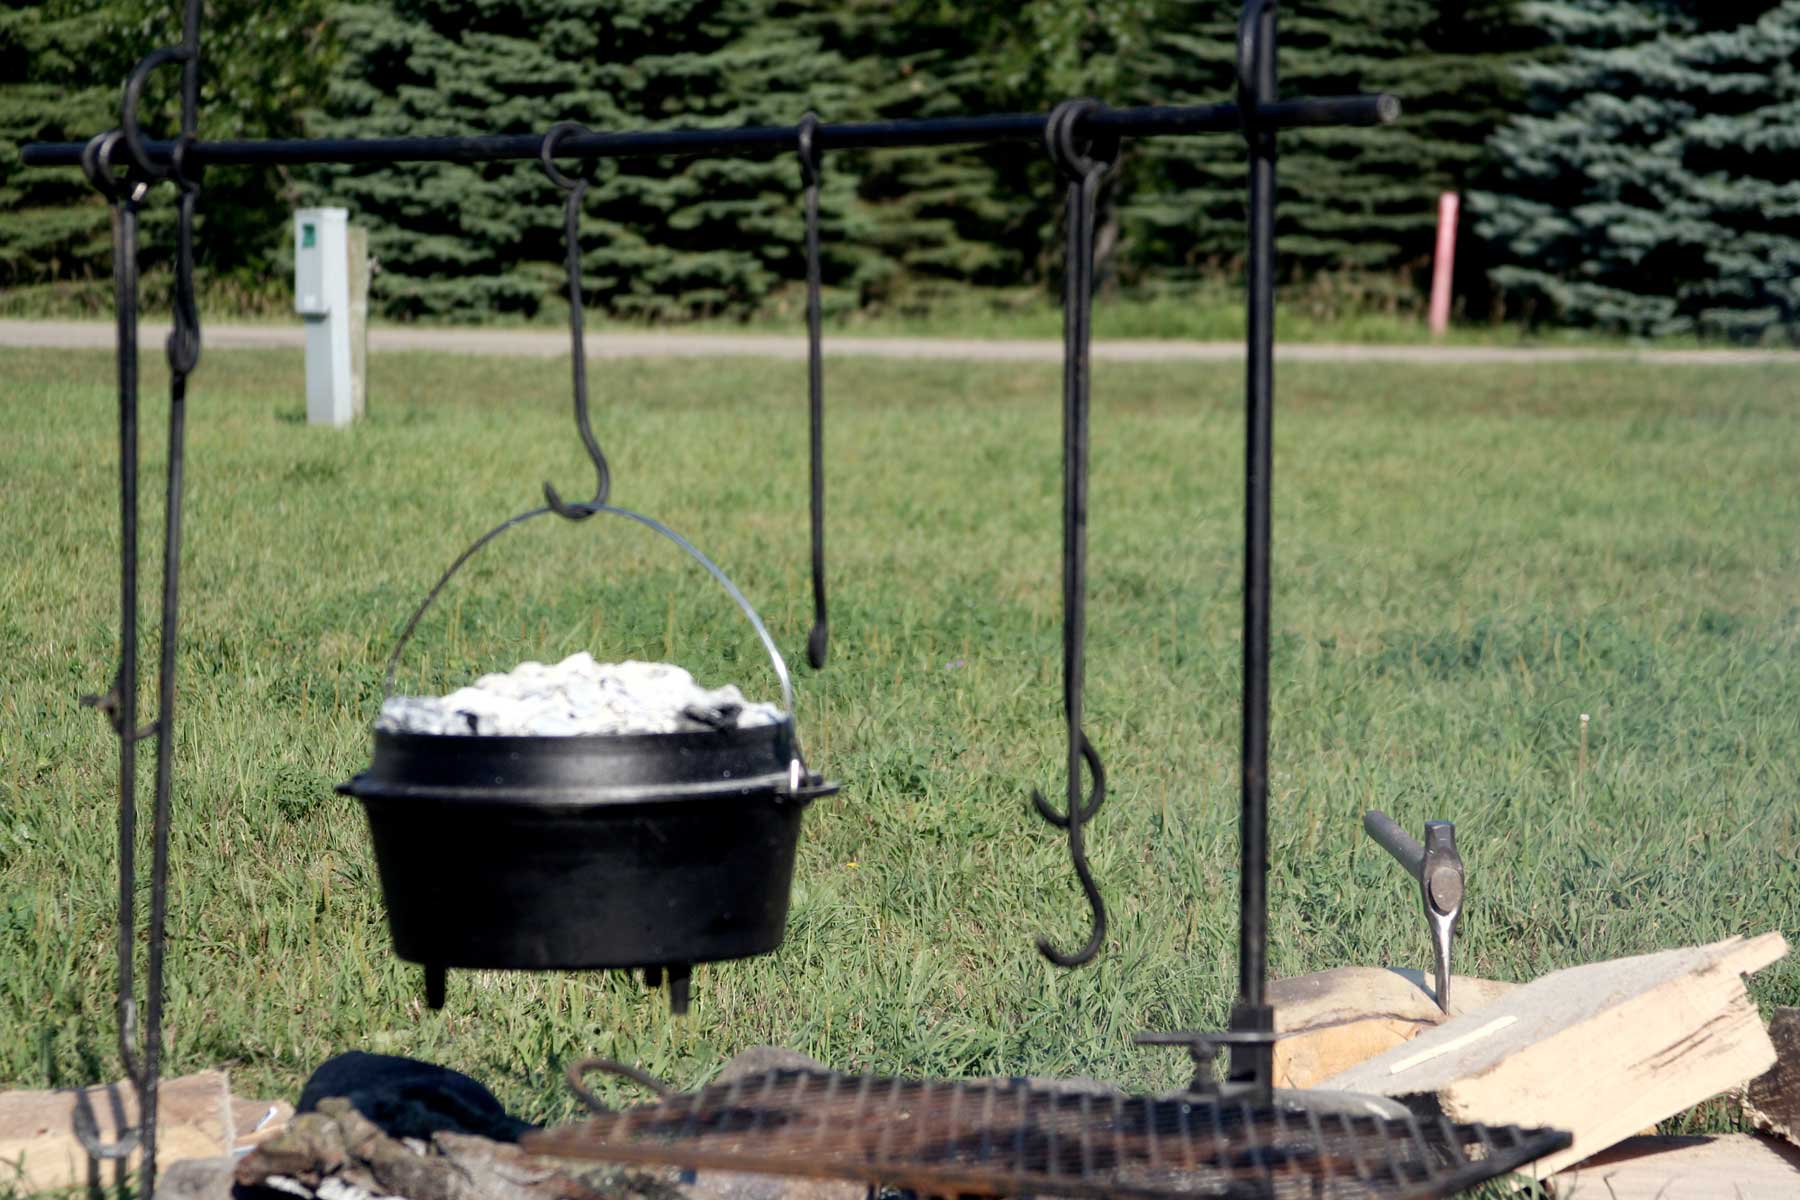 Dutch oven suspended by bail handle over fire